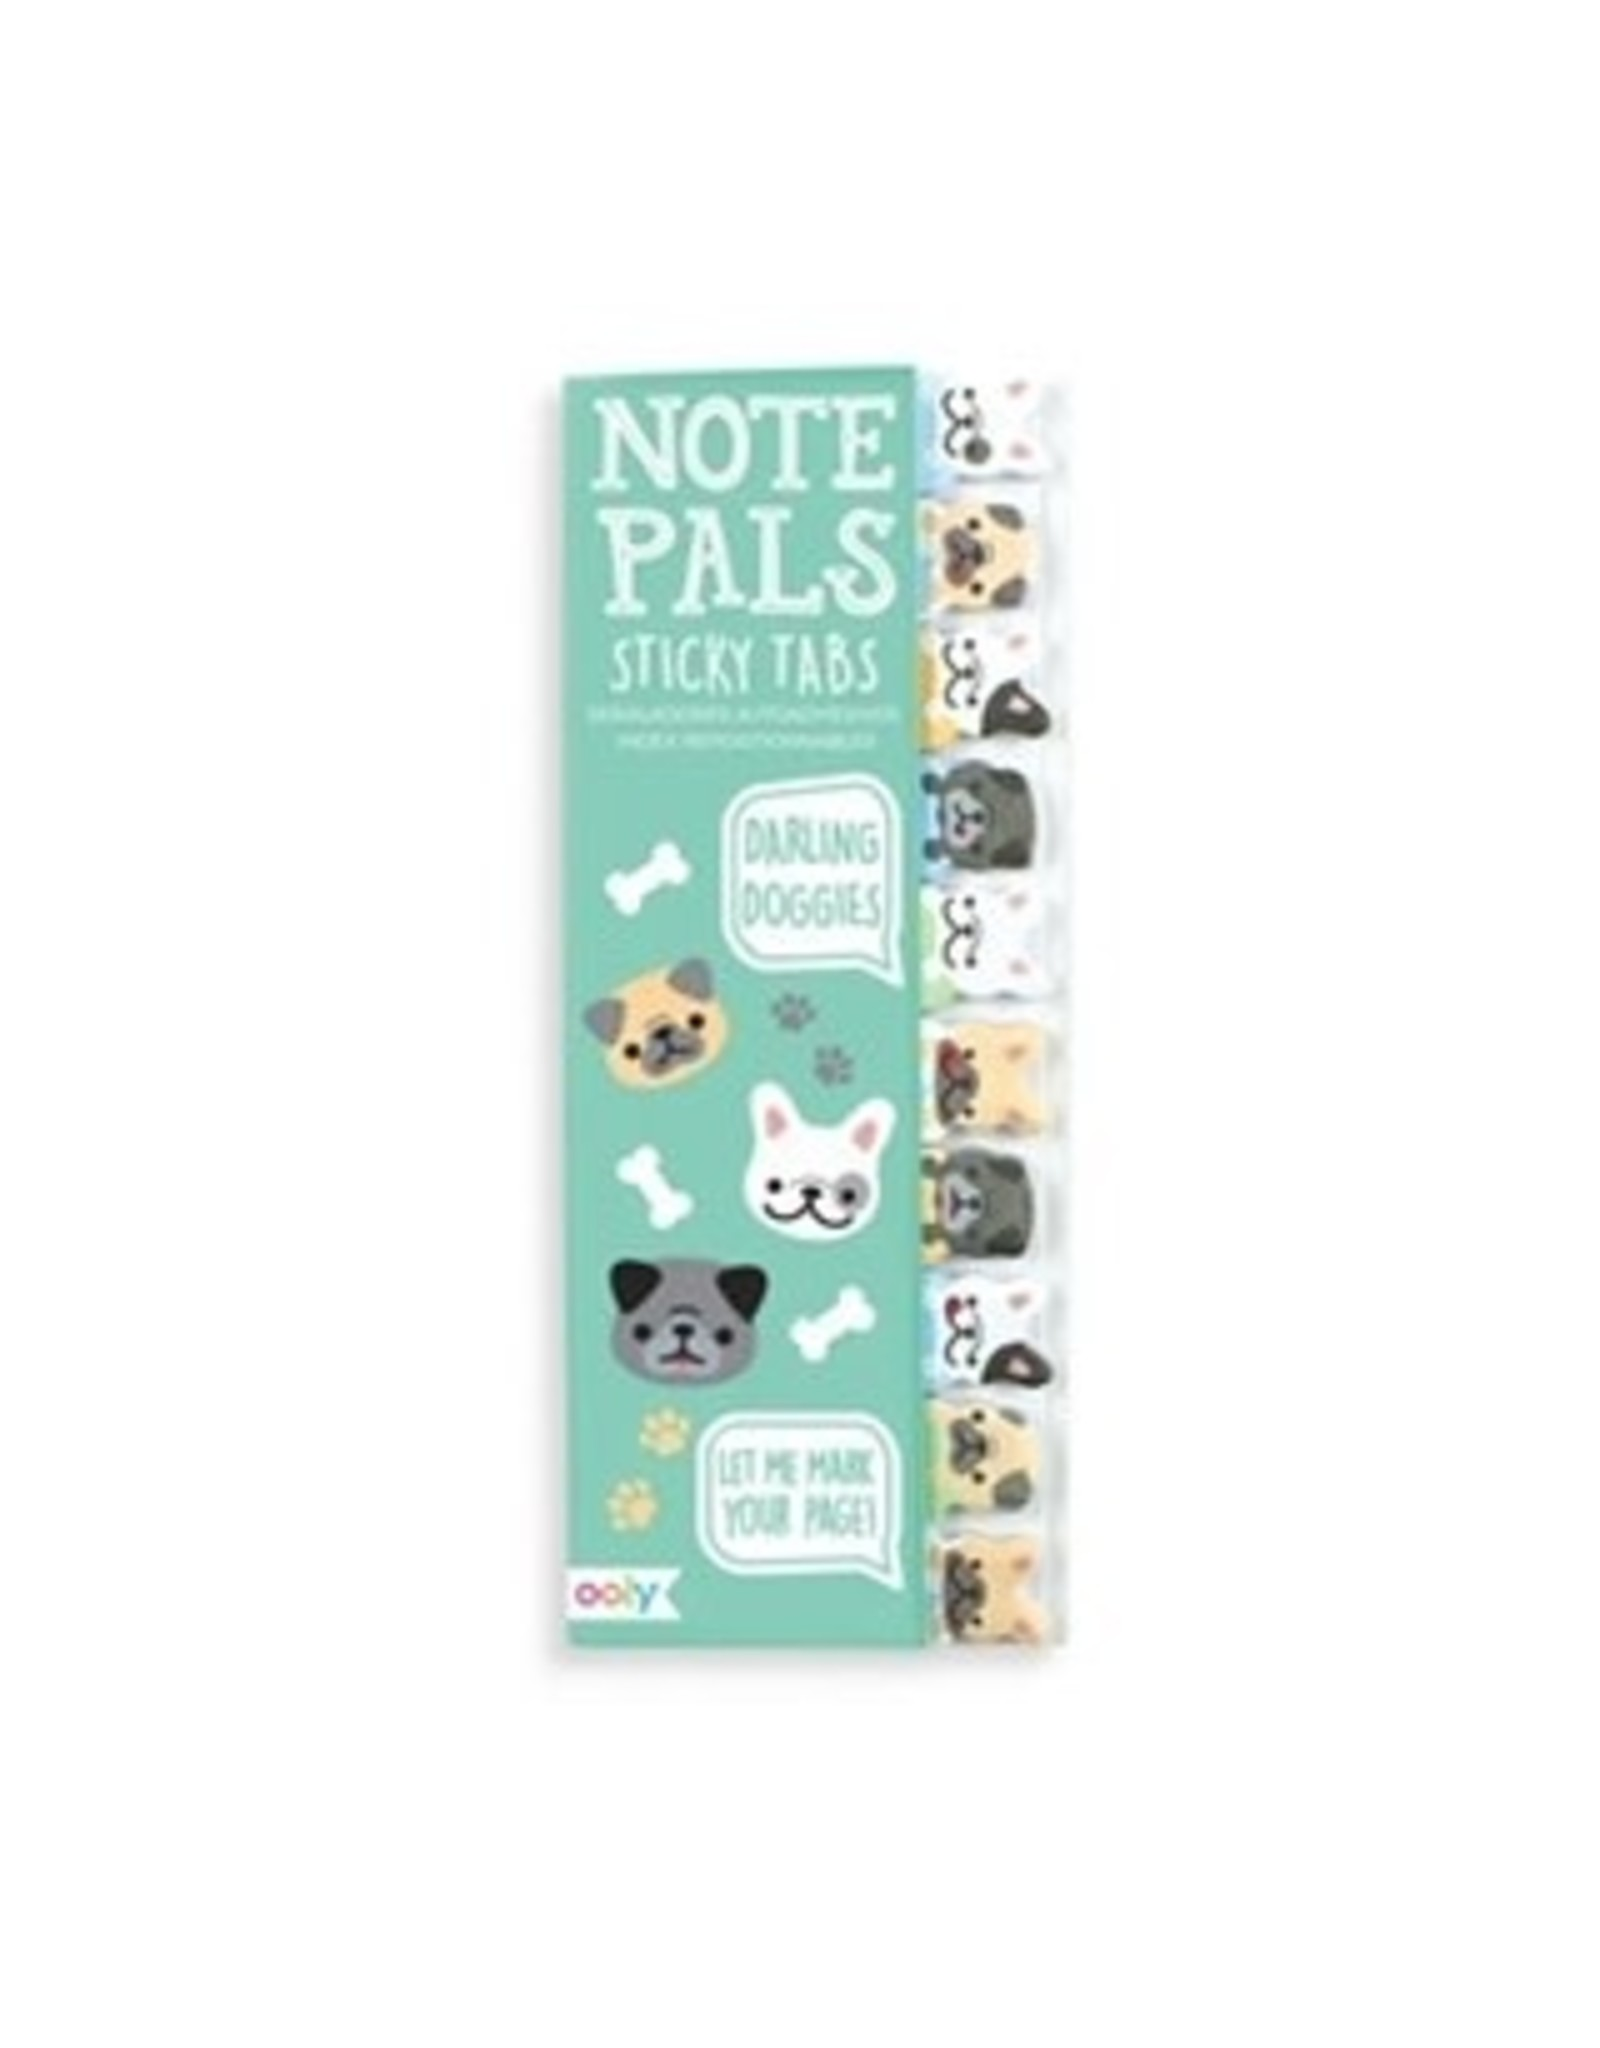 Note Pals Sticky Note Pads - Darlin Doggies